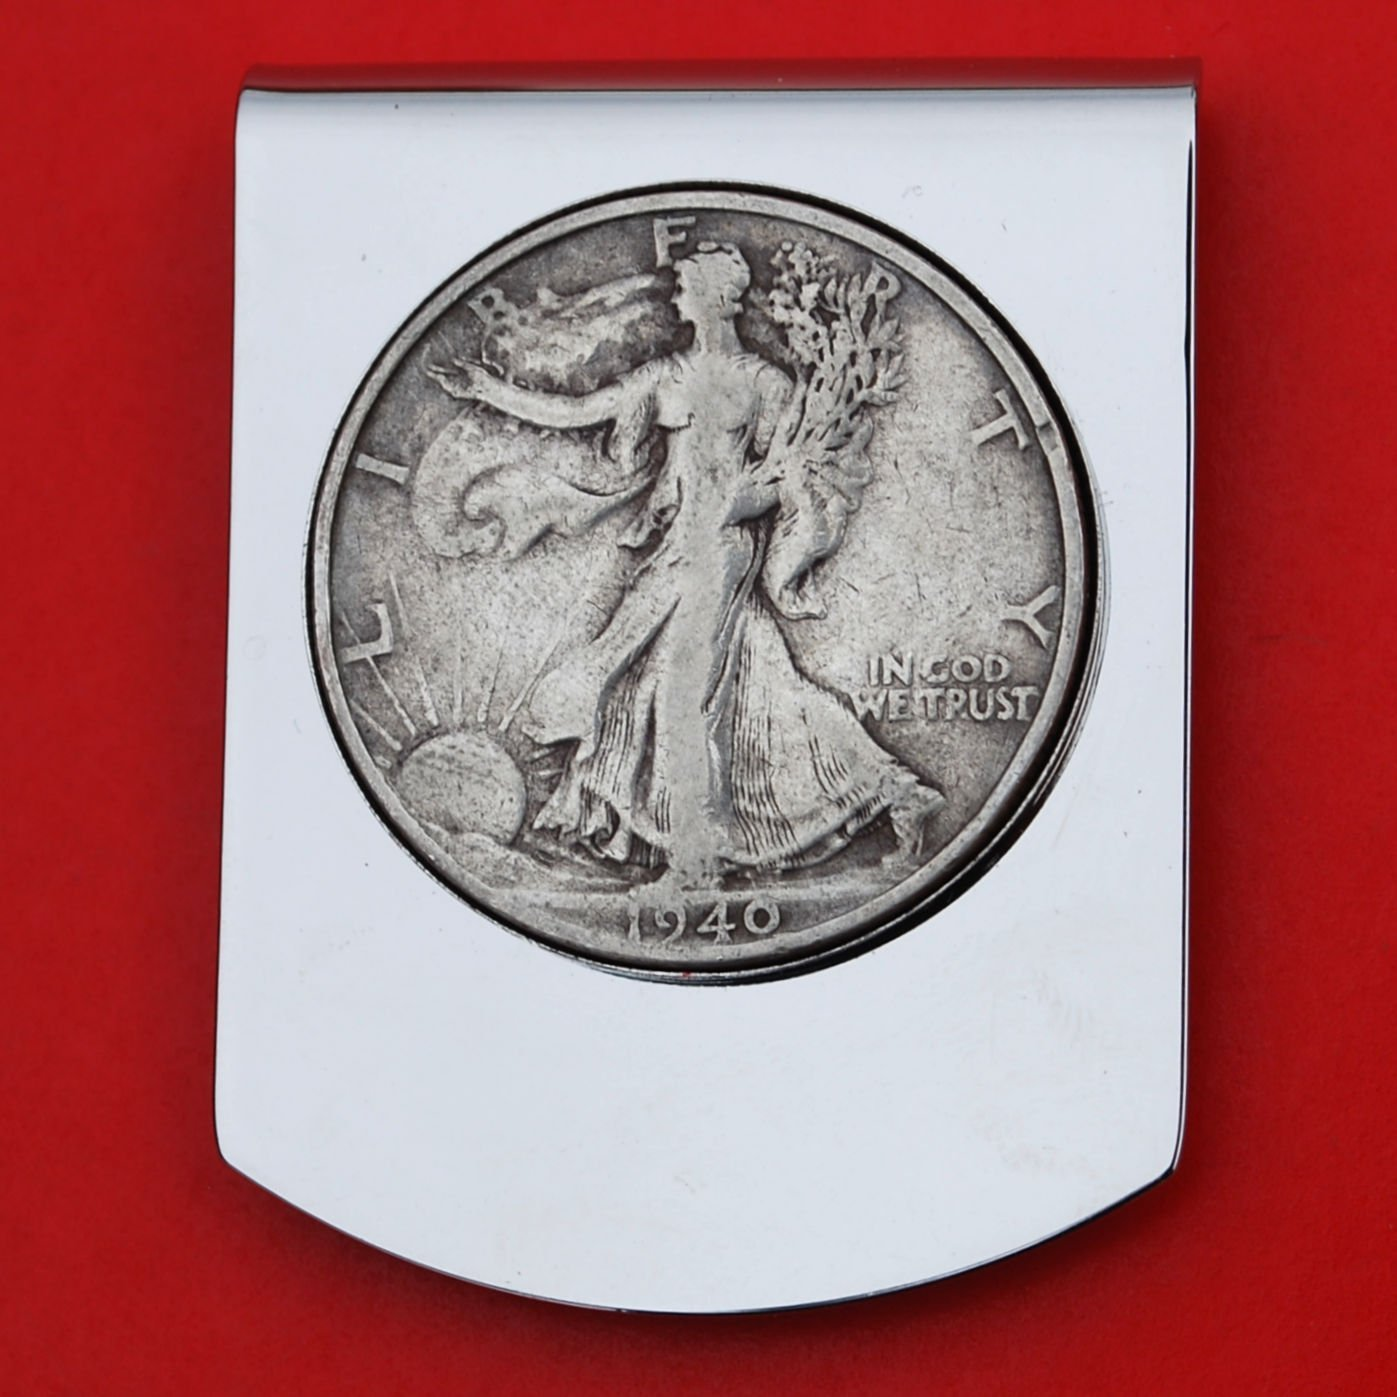 US 1940 Walking Liberty Half Dollar Stainless Steel Large Money Clip NEW Wide Design